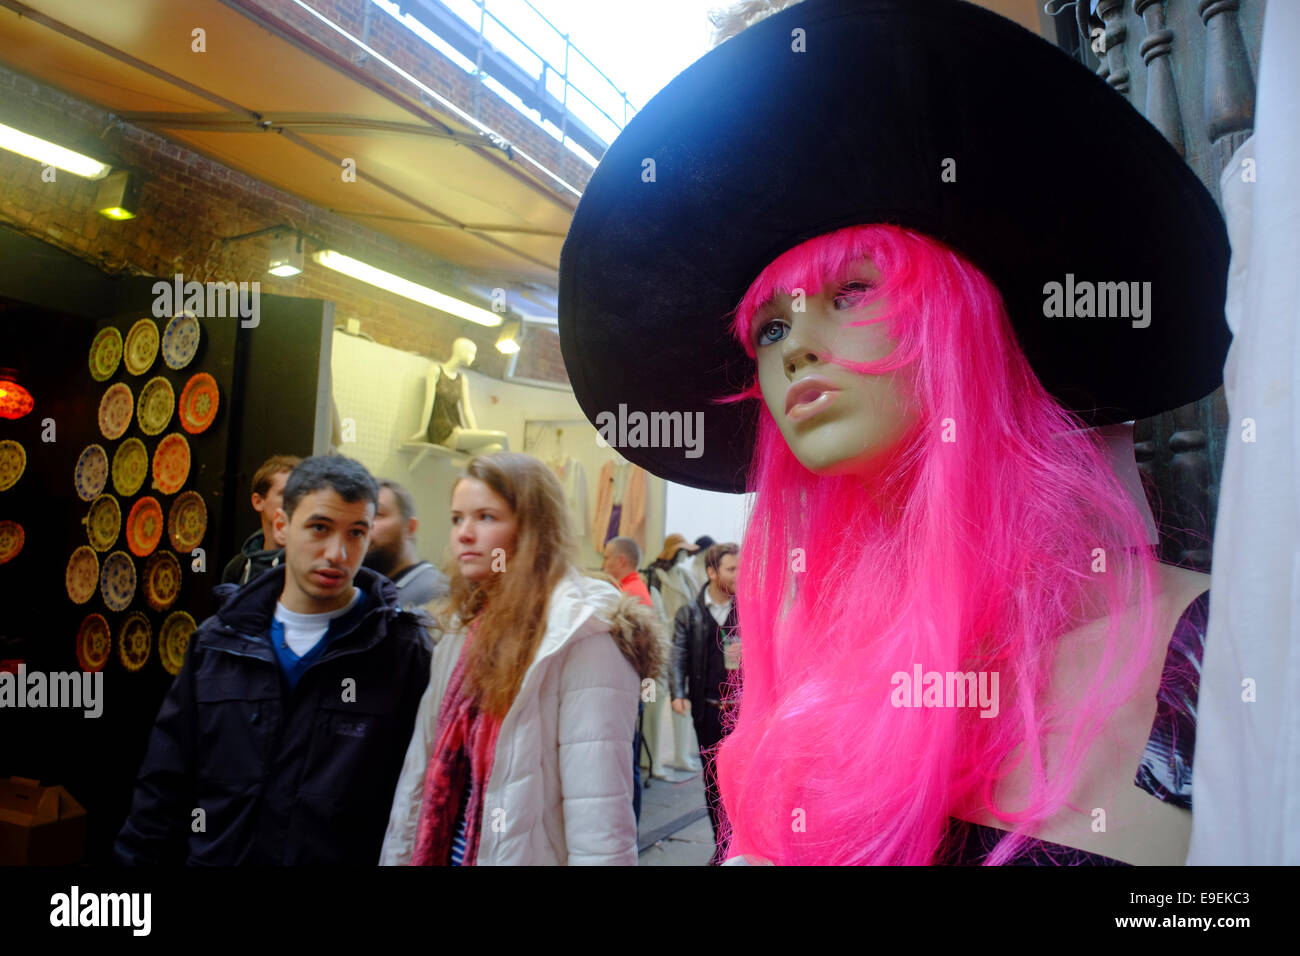 pink wig & witched hat on manikin at Camden Market, London, UK - Stock Image